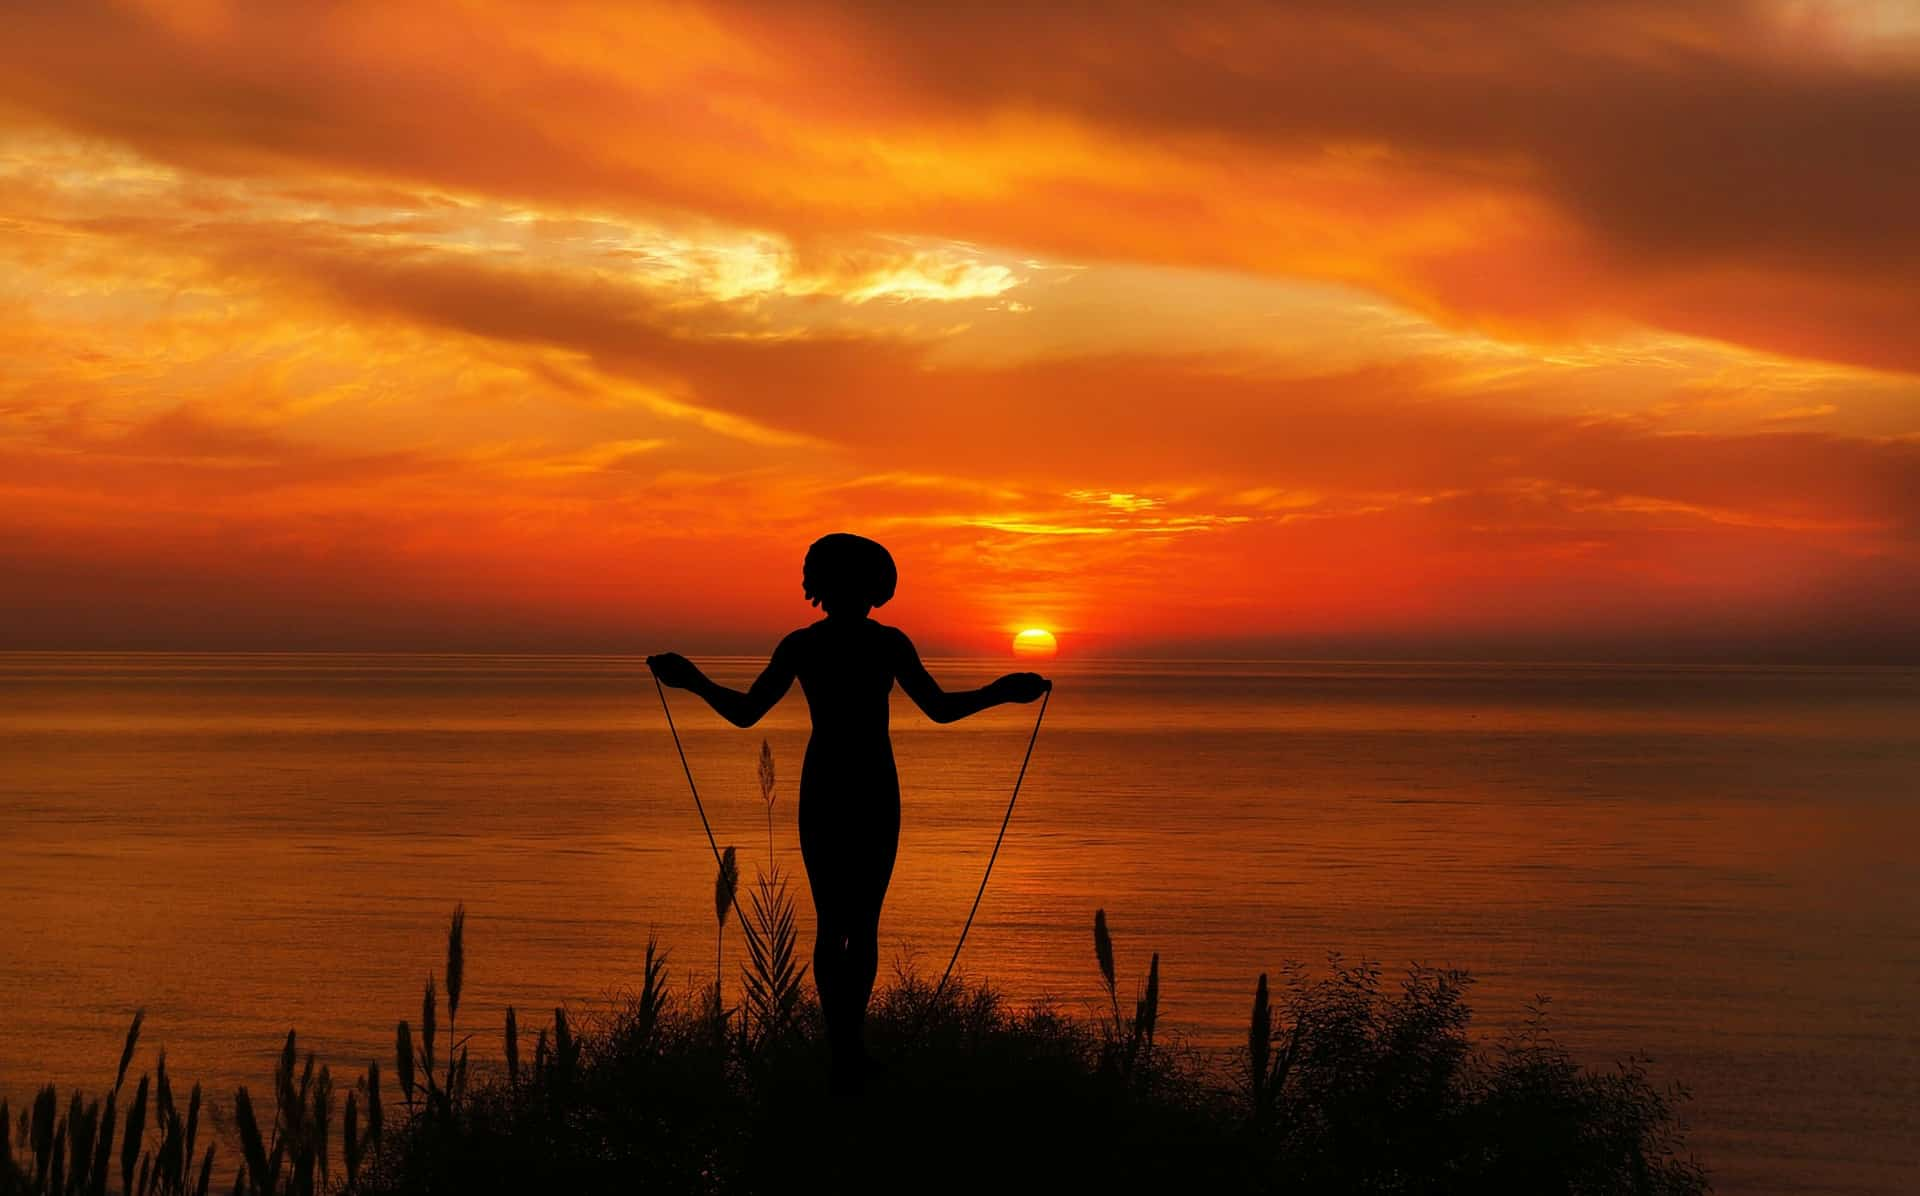 a woman jumping rope at sunset